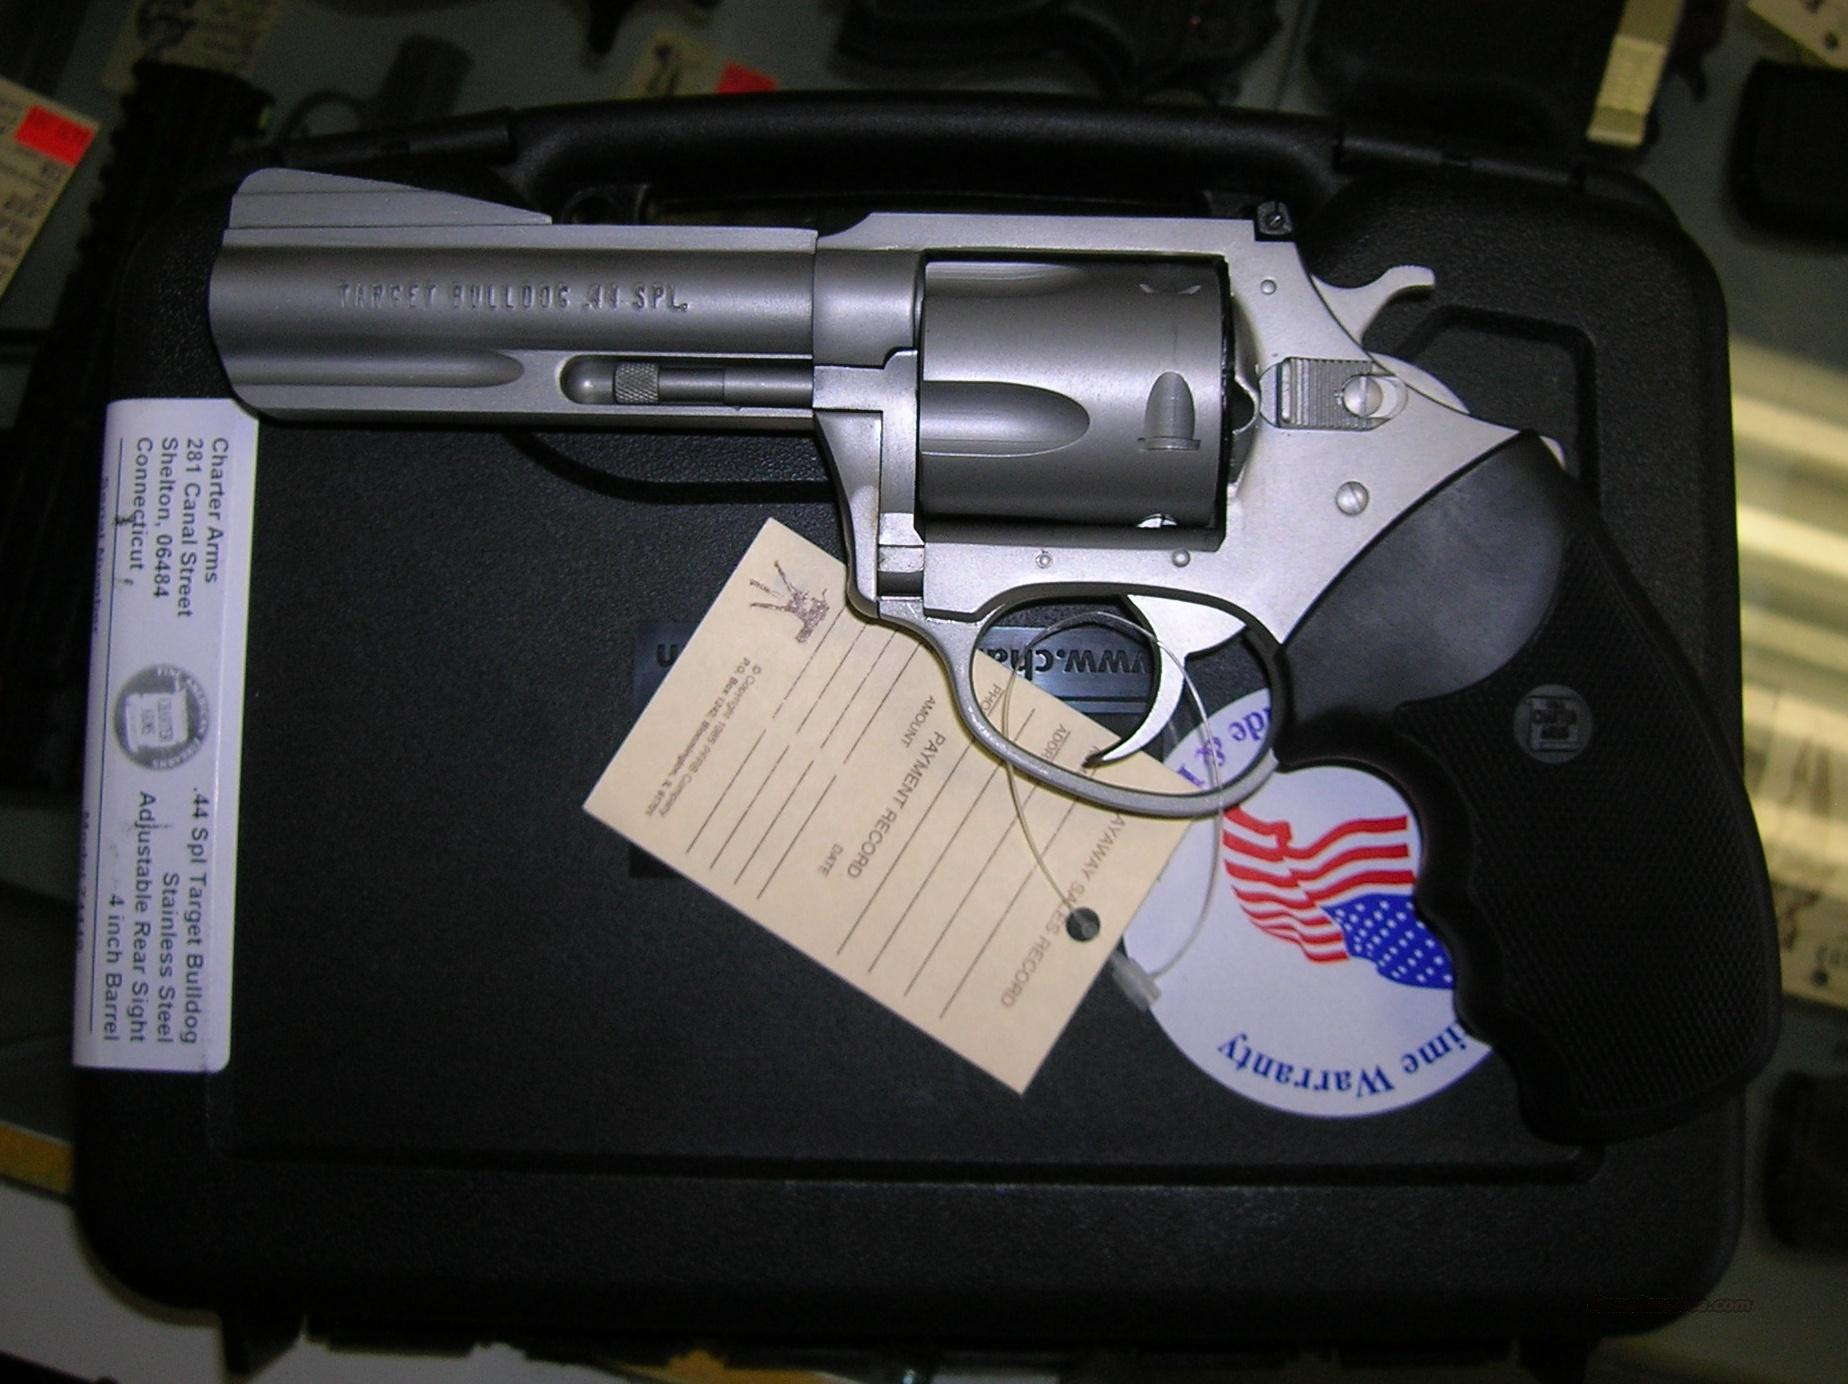 CHARTER ARMS TARGET BULLDOG 44 SPECIAL REVOLVER  Guns > Pistols > Charter Arms Revolvers